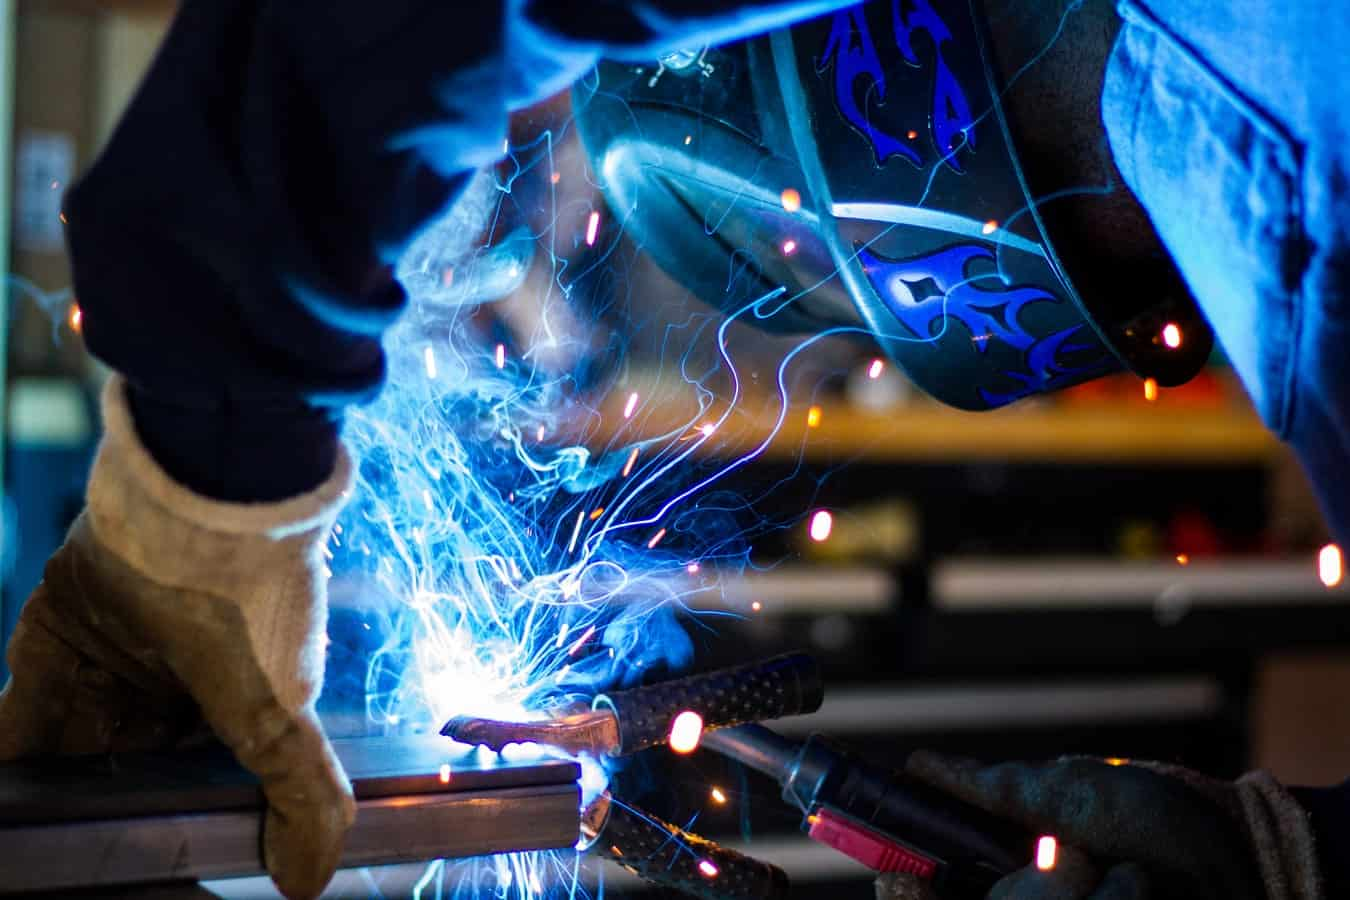 A close-up of a welder working on steel